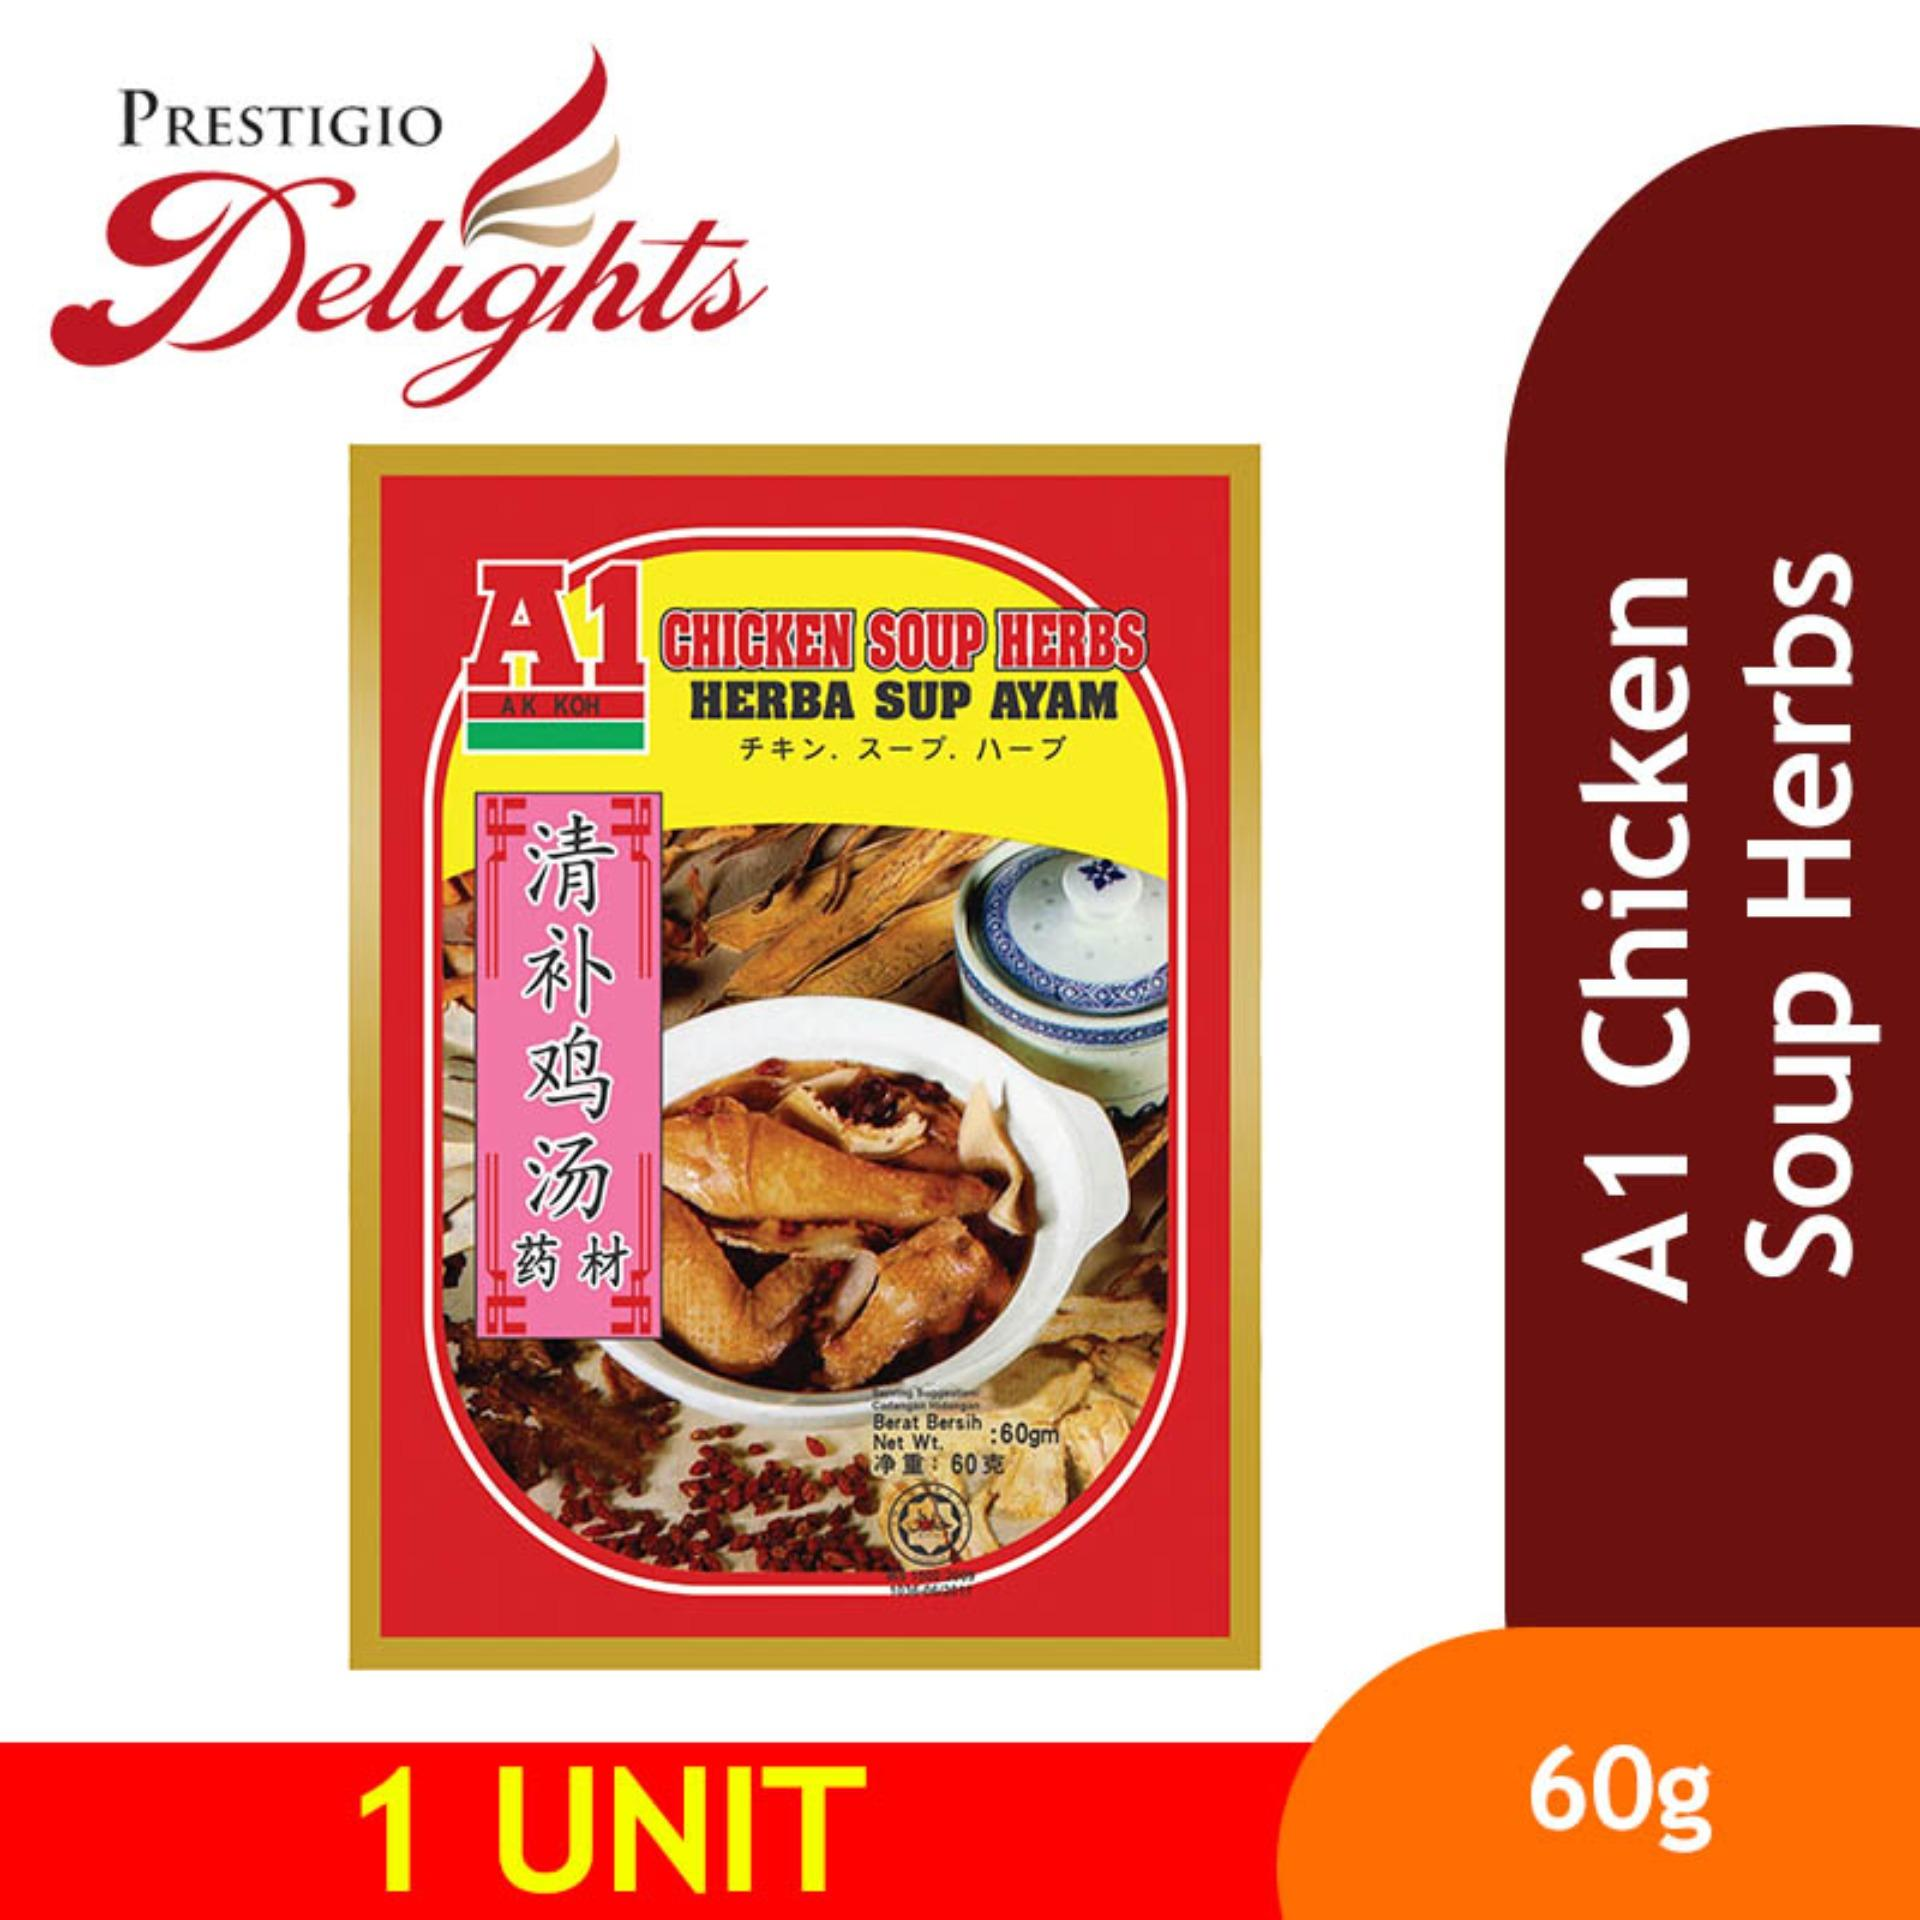 A1 Chicken Soup Herbs 60g By Prestigio Delights.